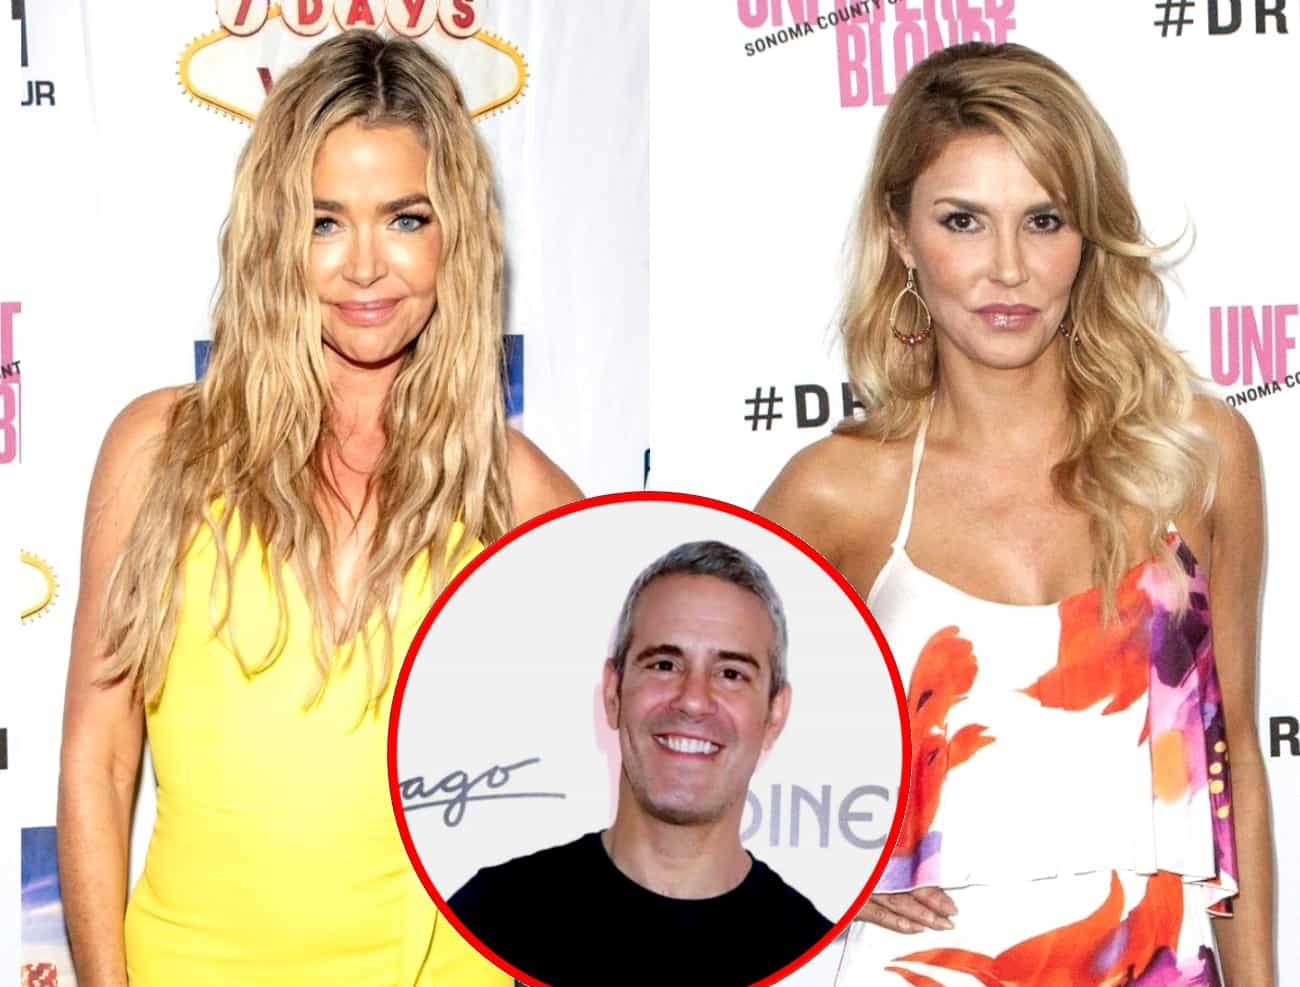 Denise Richards Reacts to Brandi Glanville's Supposedly Incriminating Text Messages, Plus Where Andy Cohen and RHOBH Stars Stand on the Drama